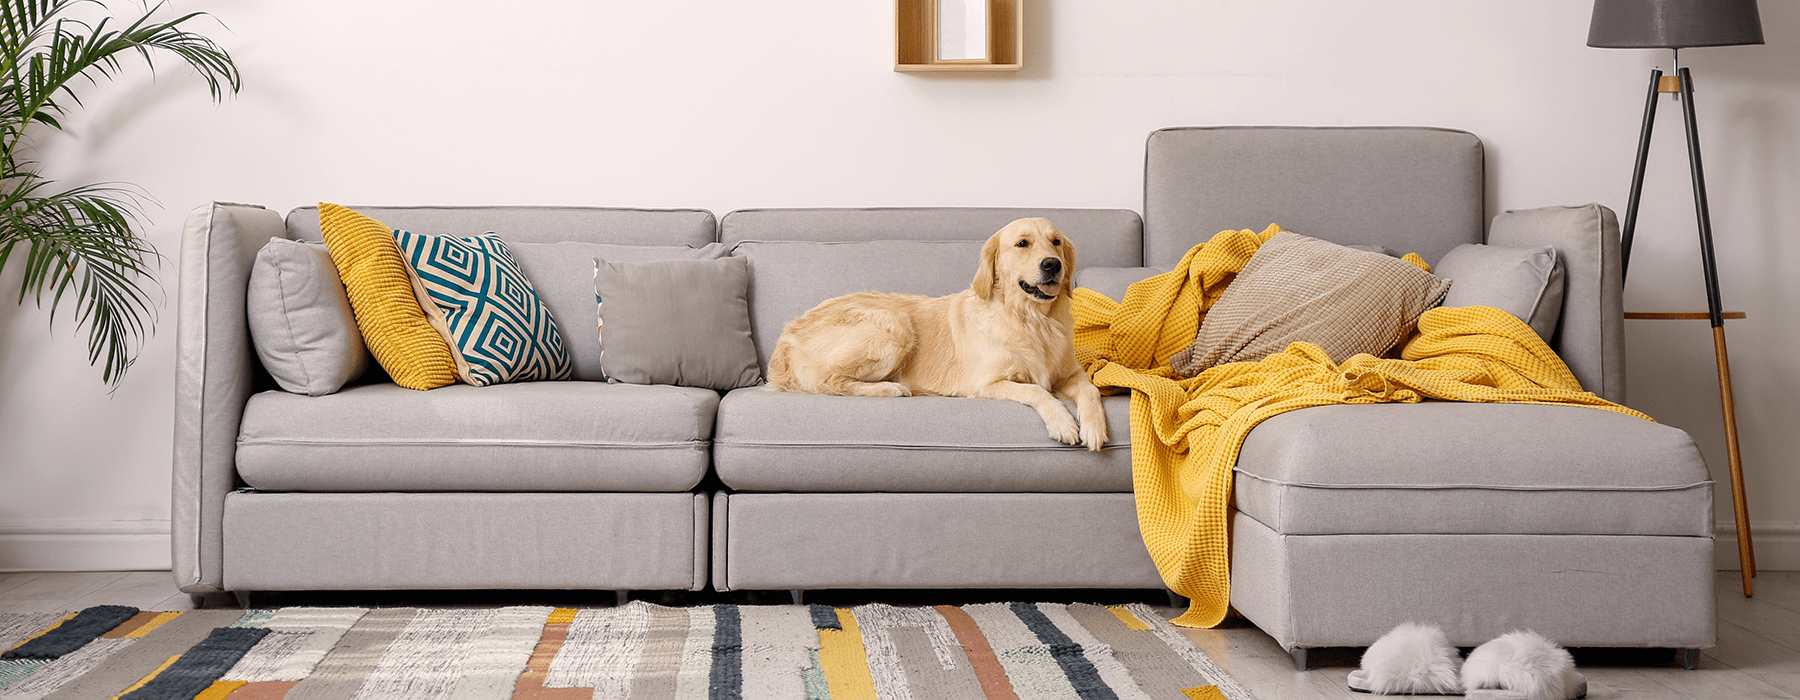 lifestyle image of a golden retriever dog on a modern couch